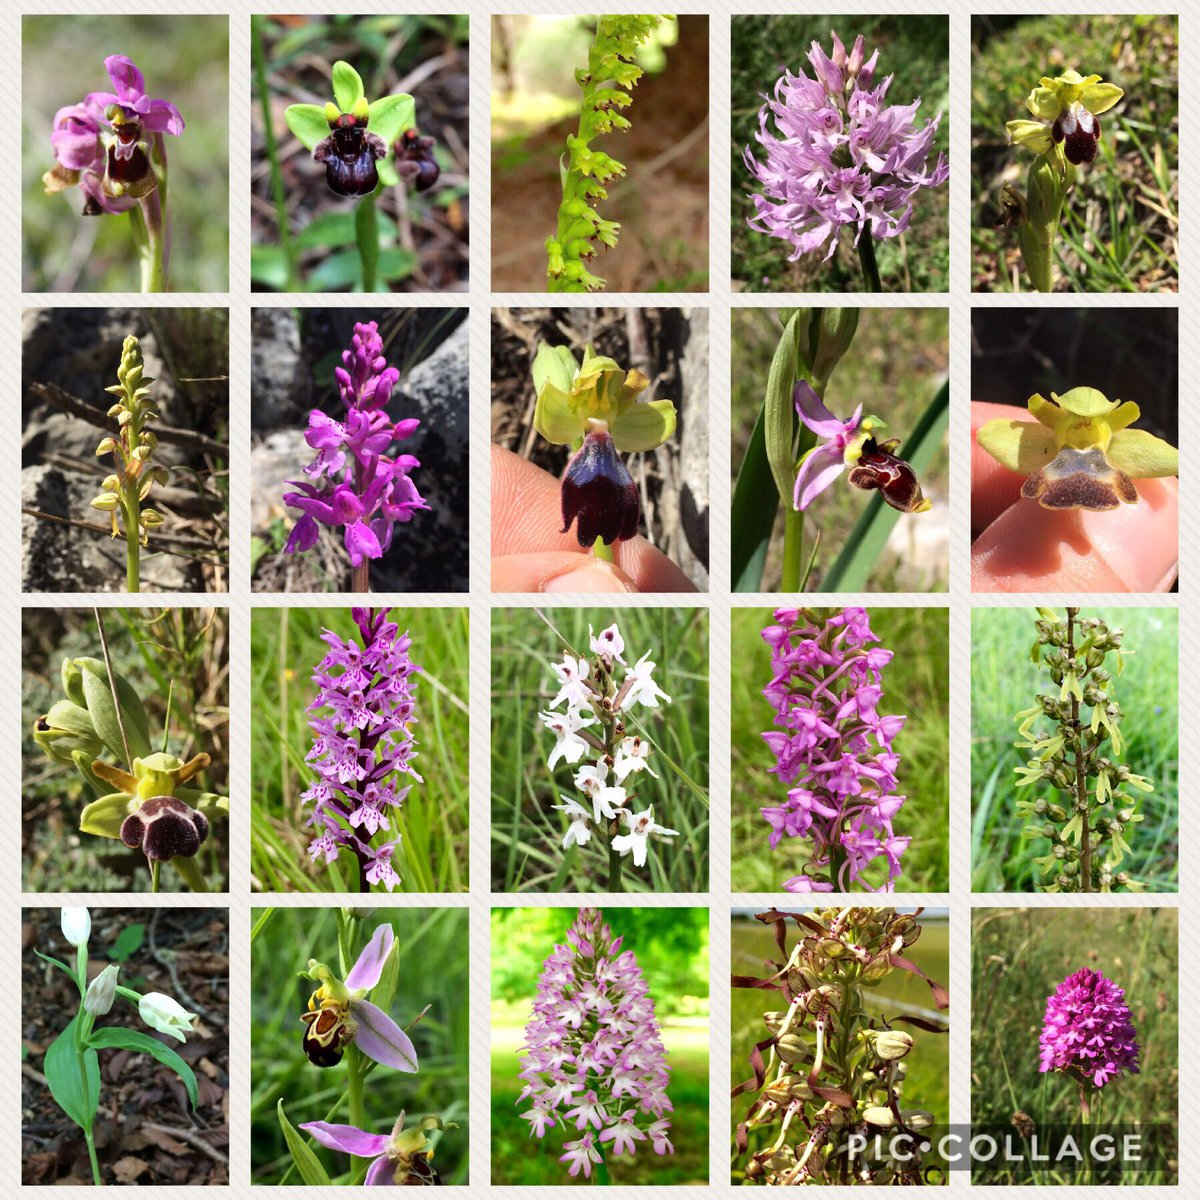 So far it has been a fantastic #year for me seeing many #European #terrestrial #orchids...and there are so many more to see!! #Orchidaceae<br>http://pic.twitter.com/5ocf7Kw6kC